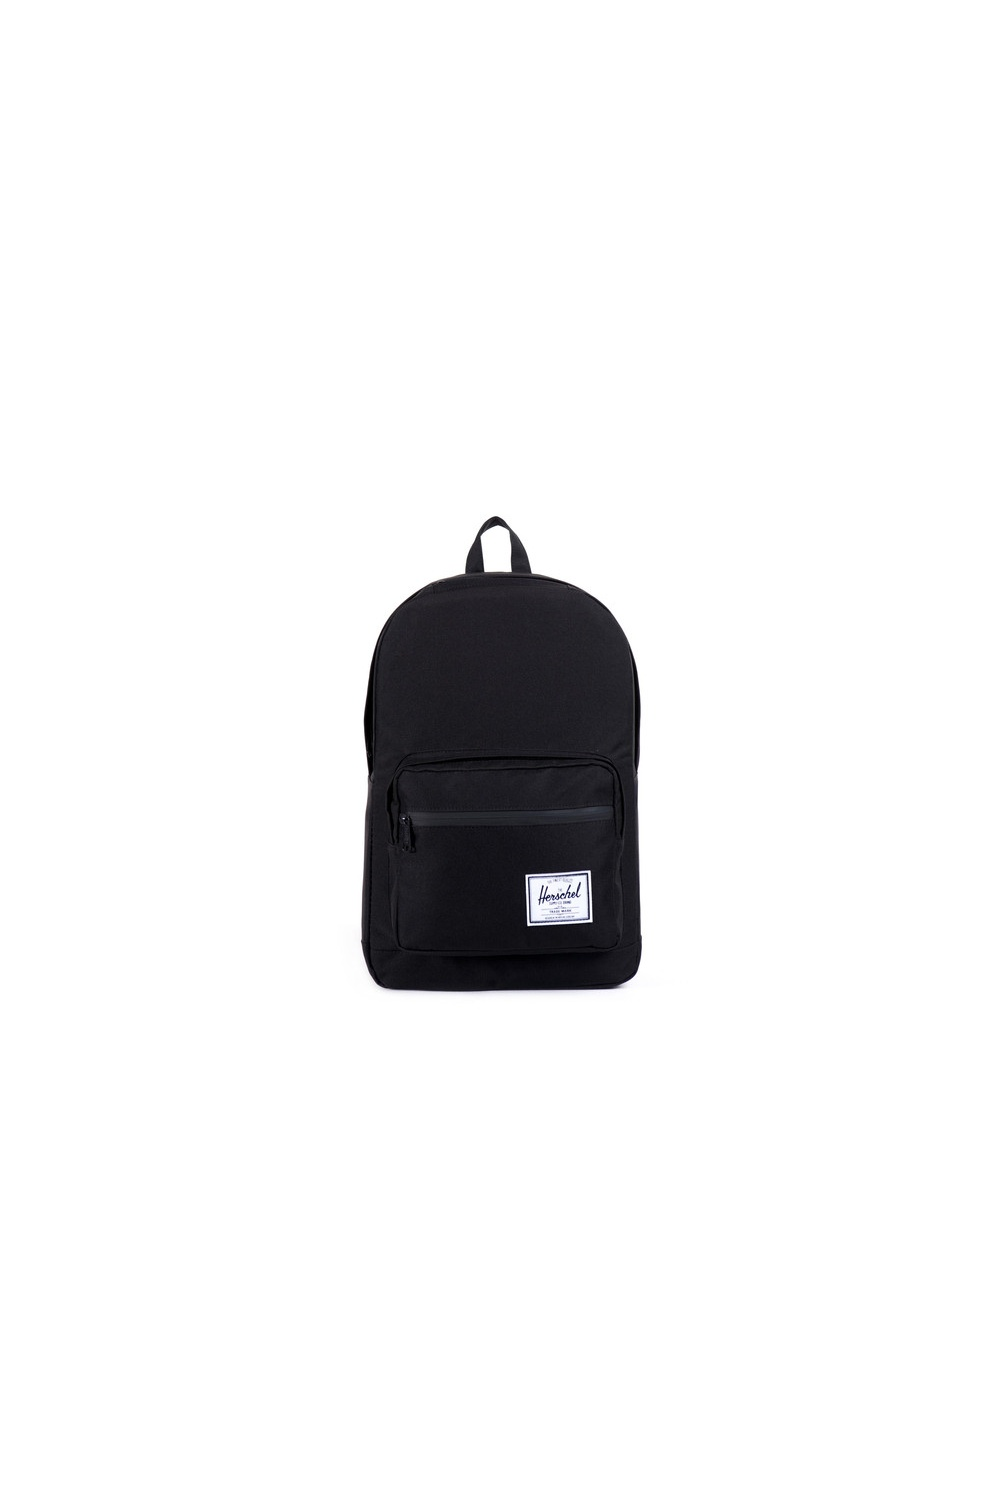 97d1b21d6c7c Herschel Supply Co Pop Quiz Backpack (Black Black) - Accessories ...